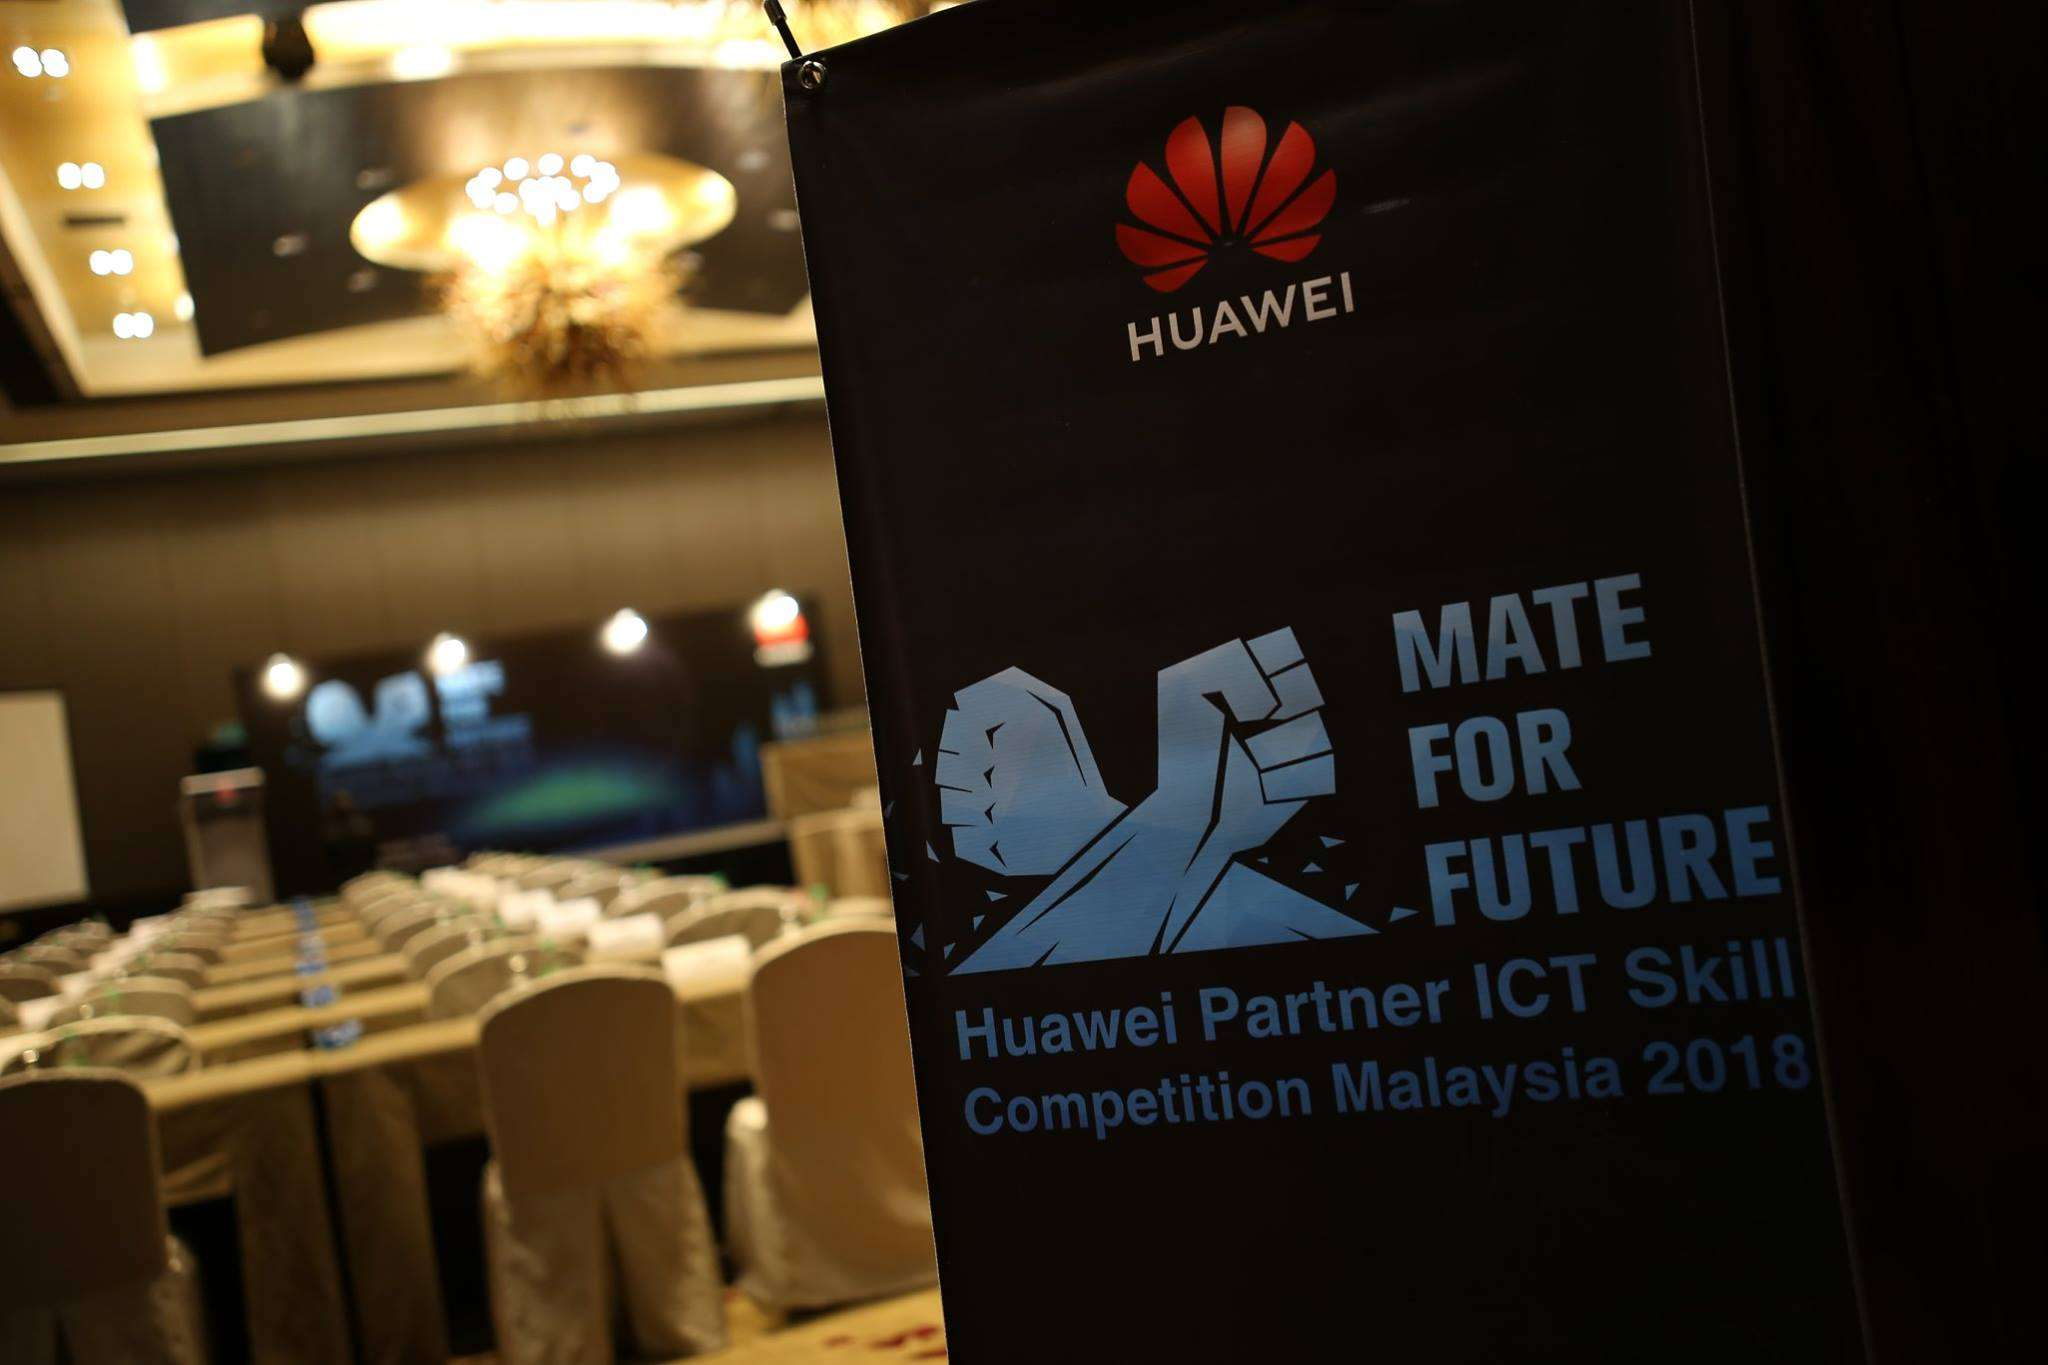 Huawei Partner ICT Skill Competition Malaysia 2018 – 1